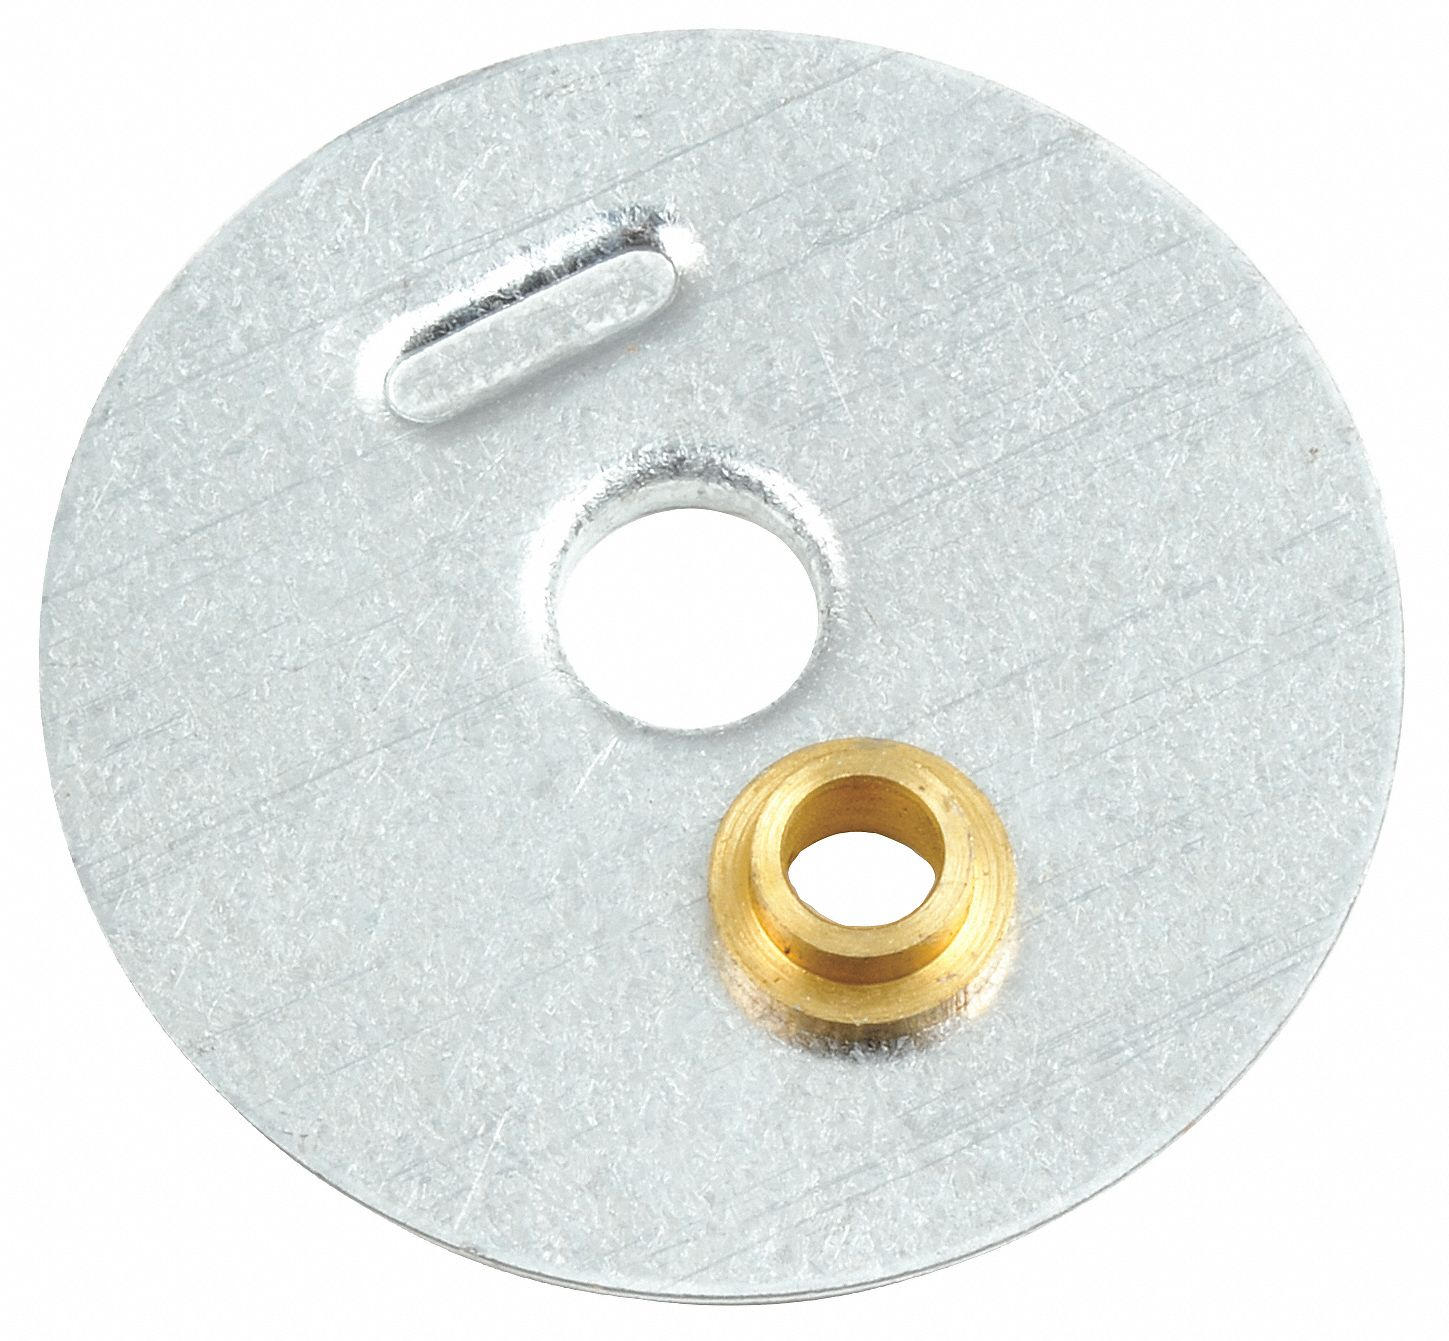 REPLACEMENT SPACER DISK ASSY